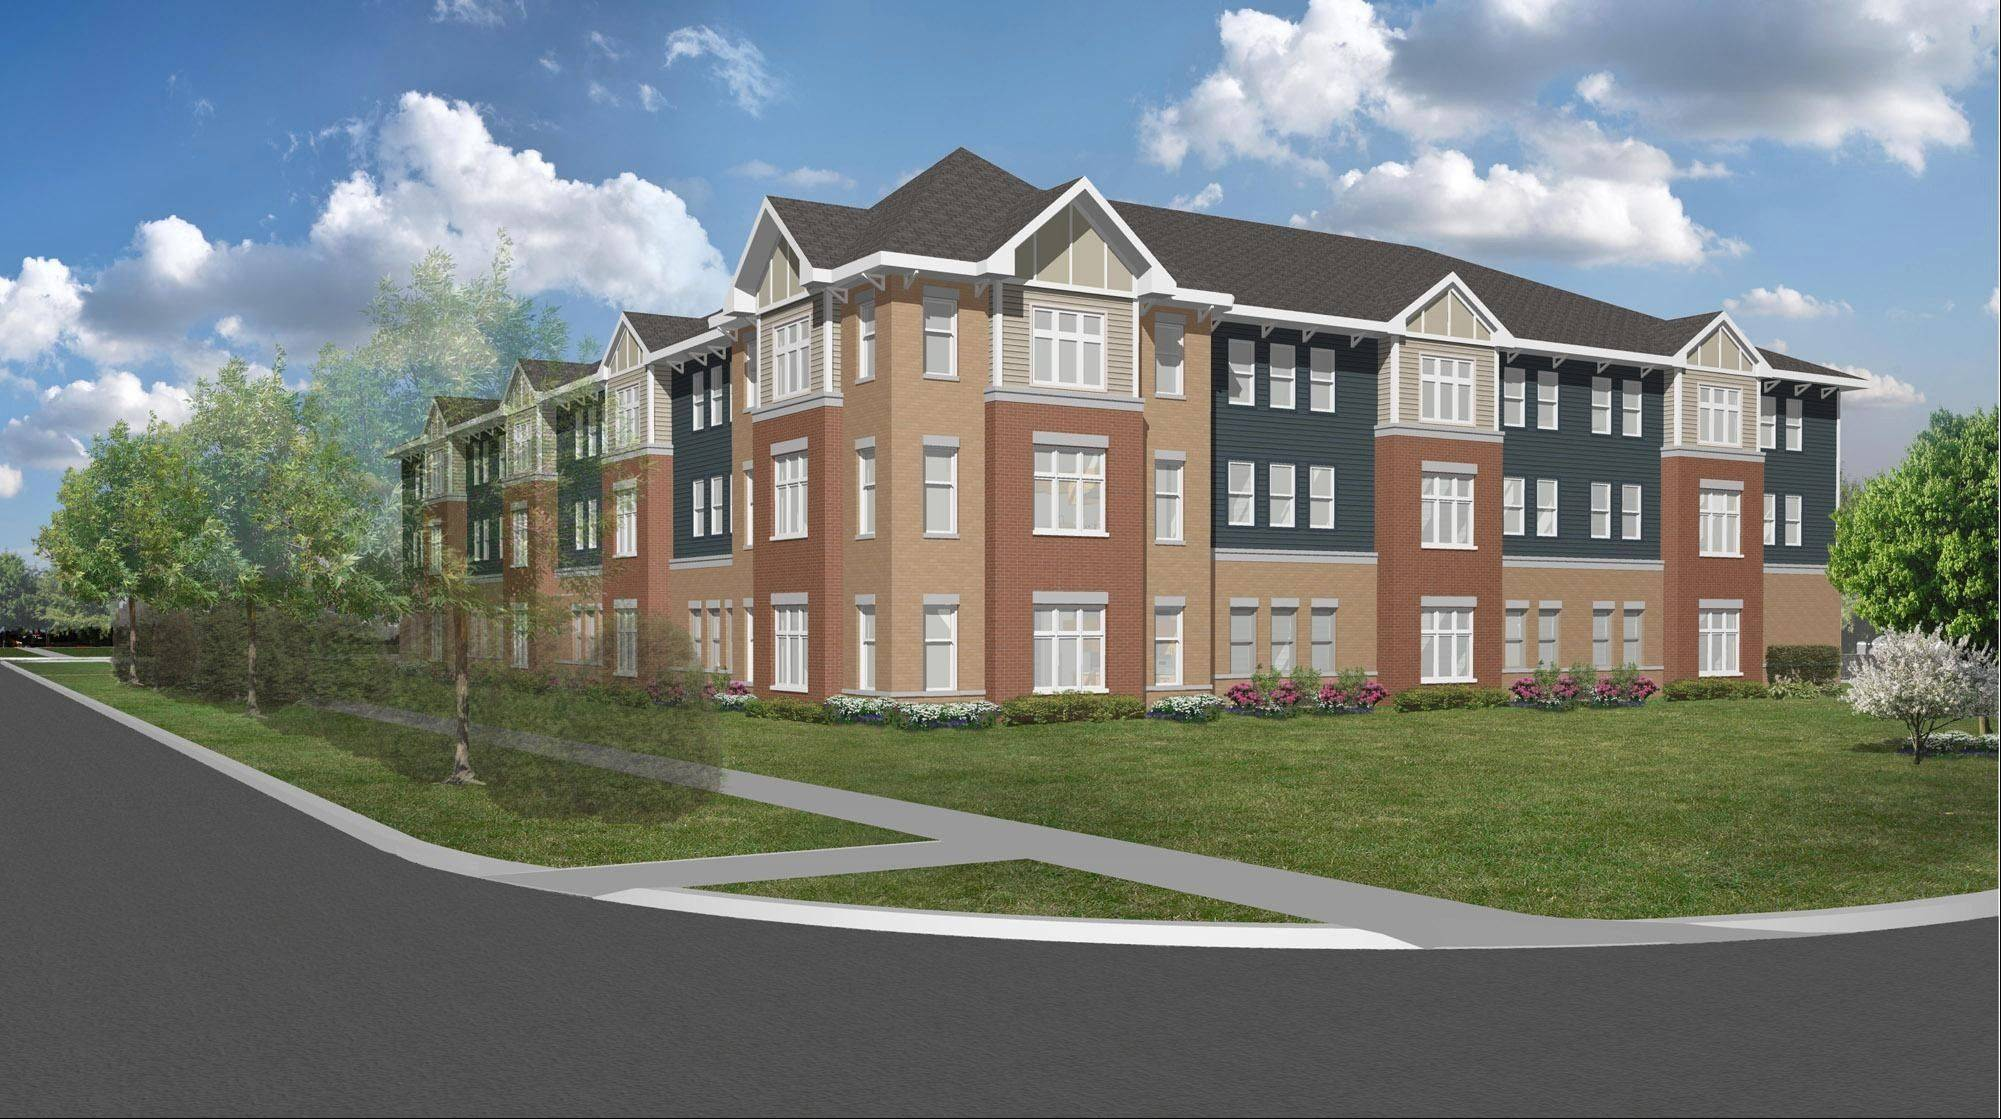 Catherine Alice Gardens is a proposed facility near downtown Palatine consisting of 33 affordable apartments for people with disabilities.